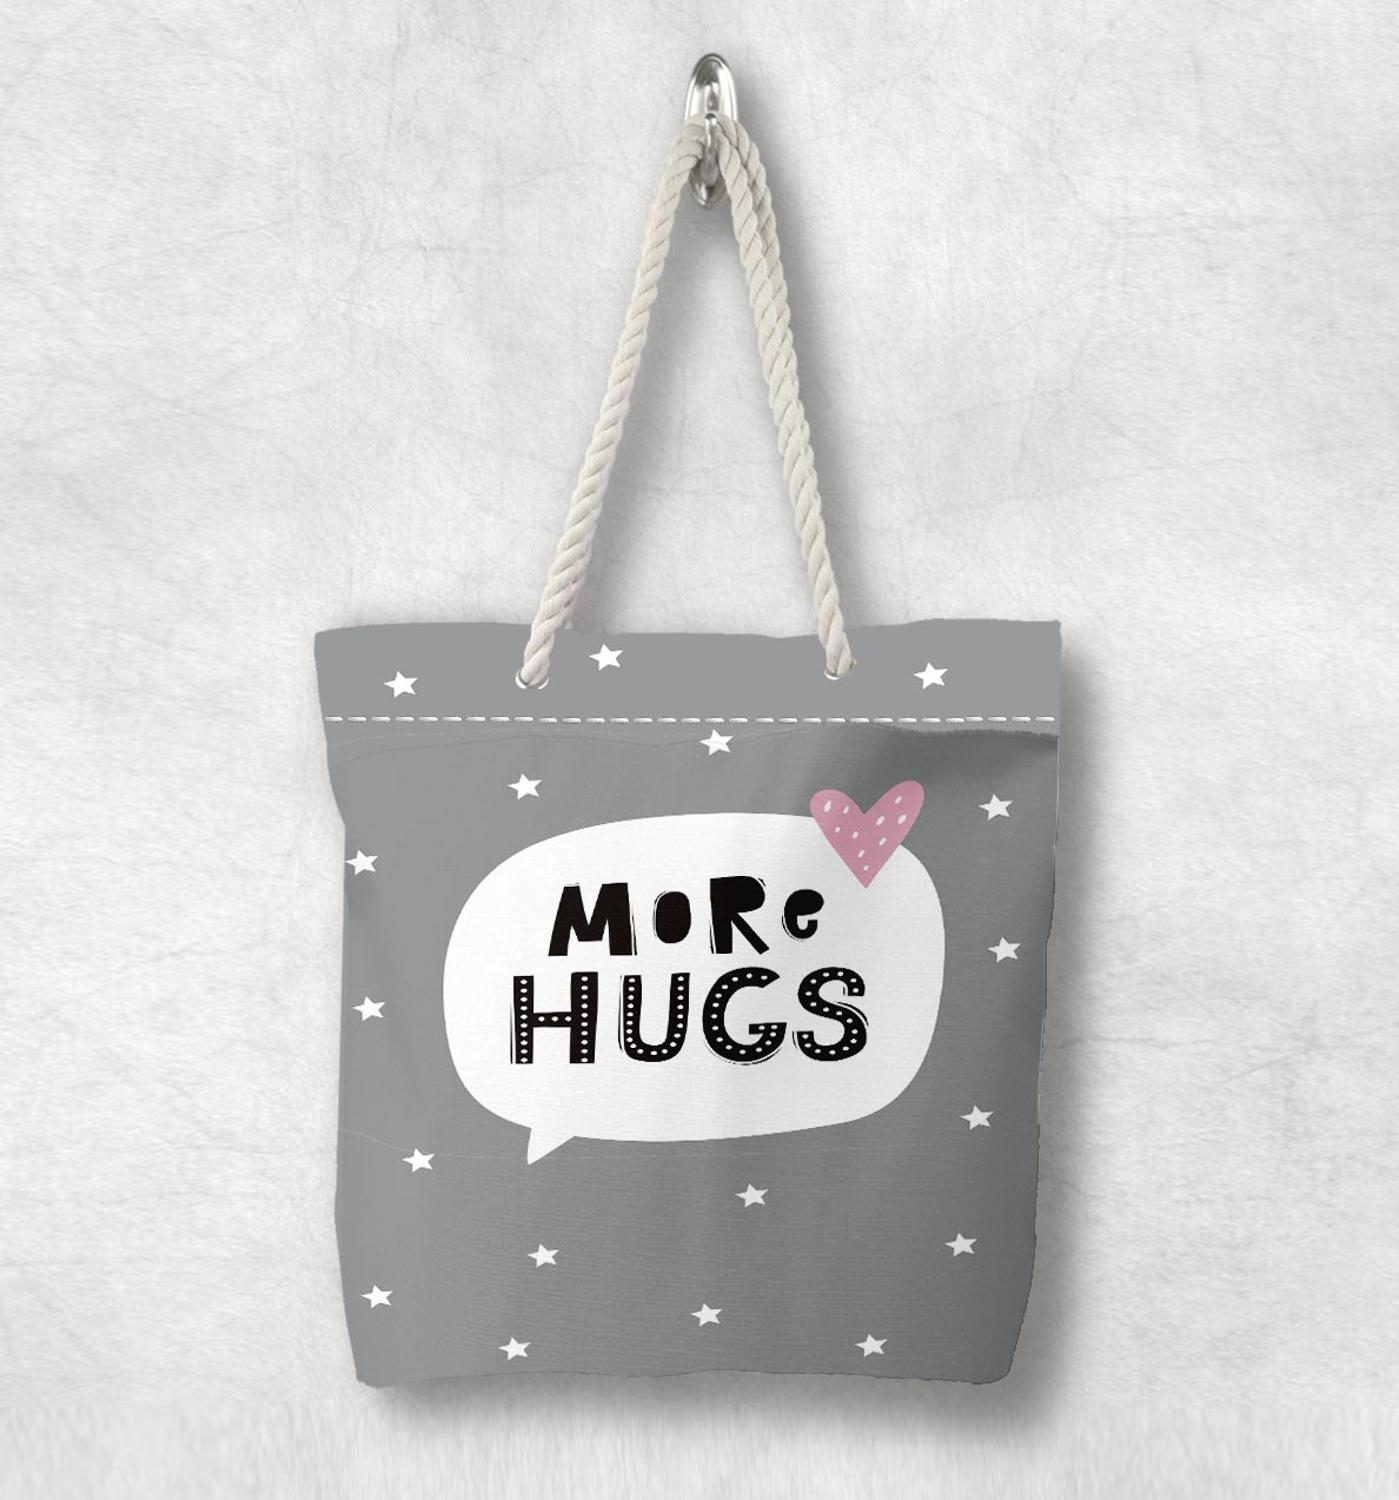 Else Gray White Stars Hugs Pink Hearts Scandinavian White Rope Handle Canvas Bag  Cartoon Print Zippered Tote Bag Shoulder Bag